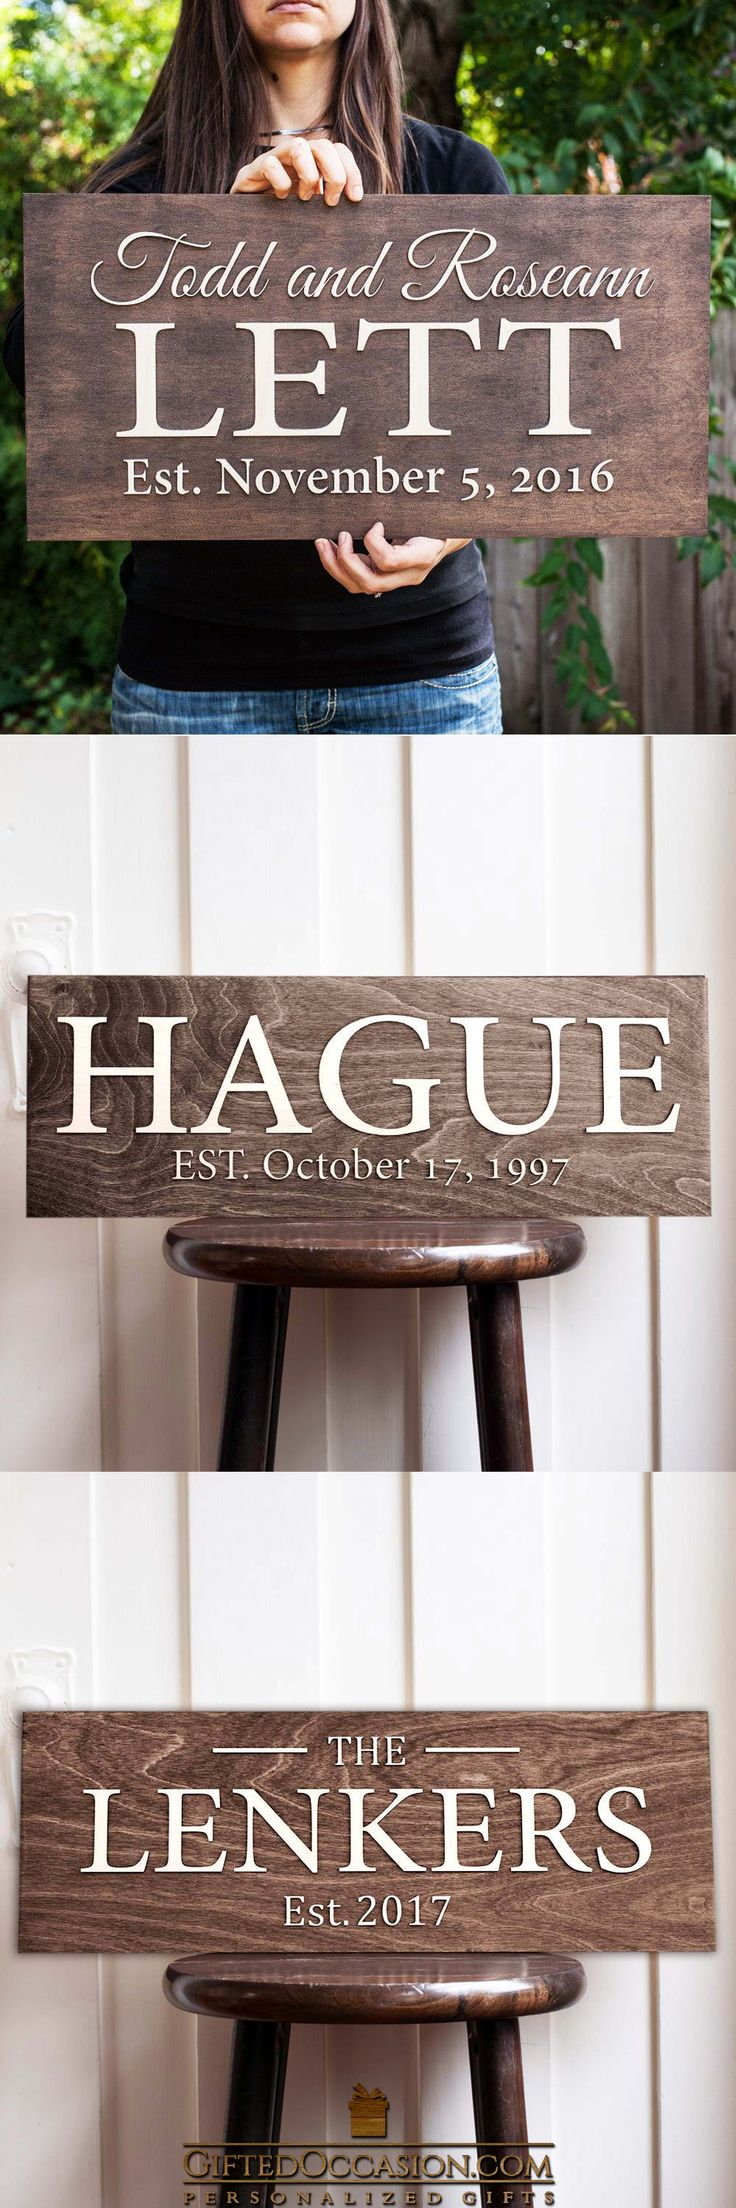 Personalized Sign Hague Design 7412 best Modern